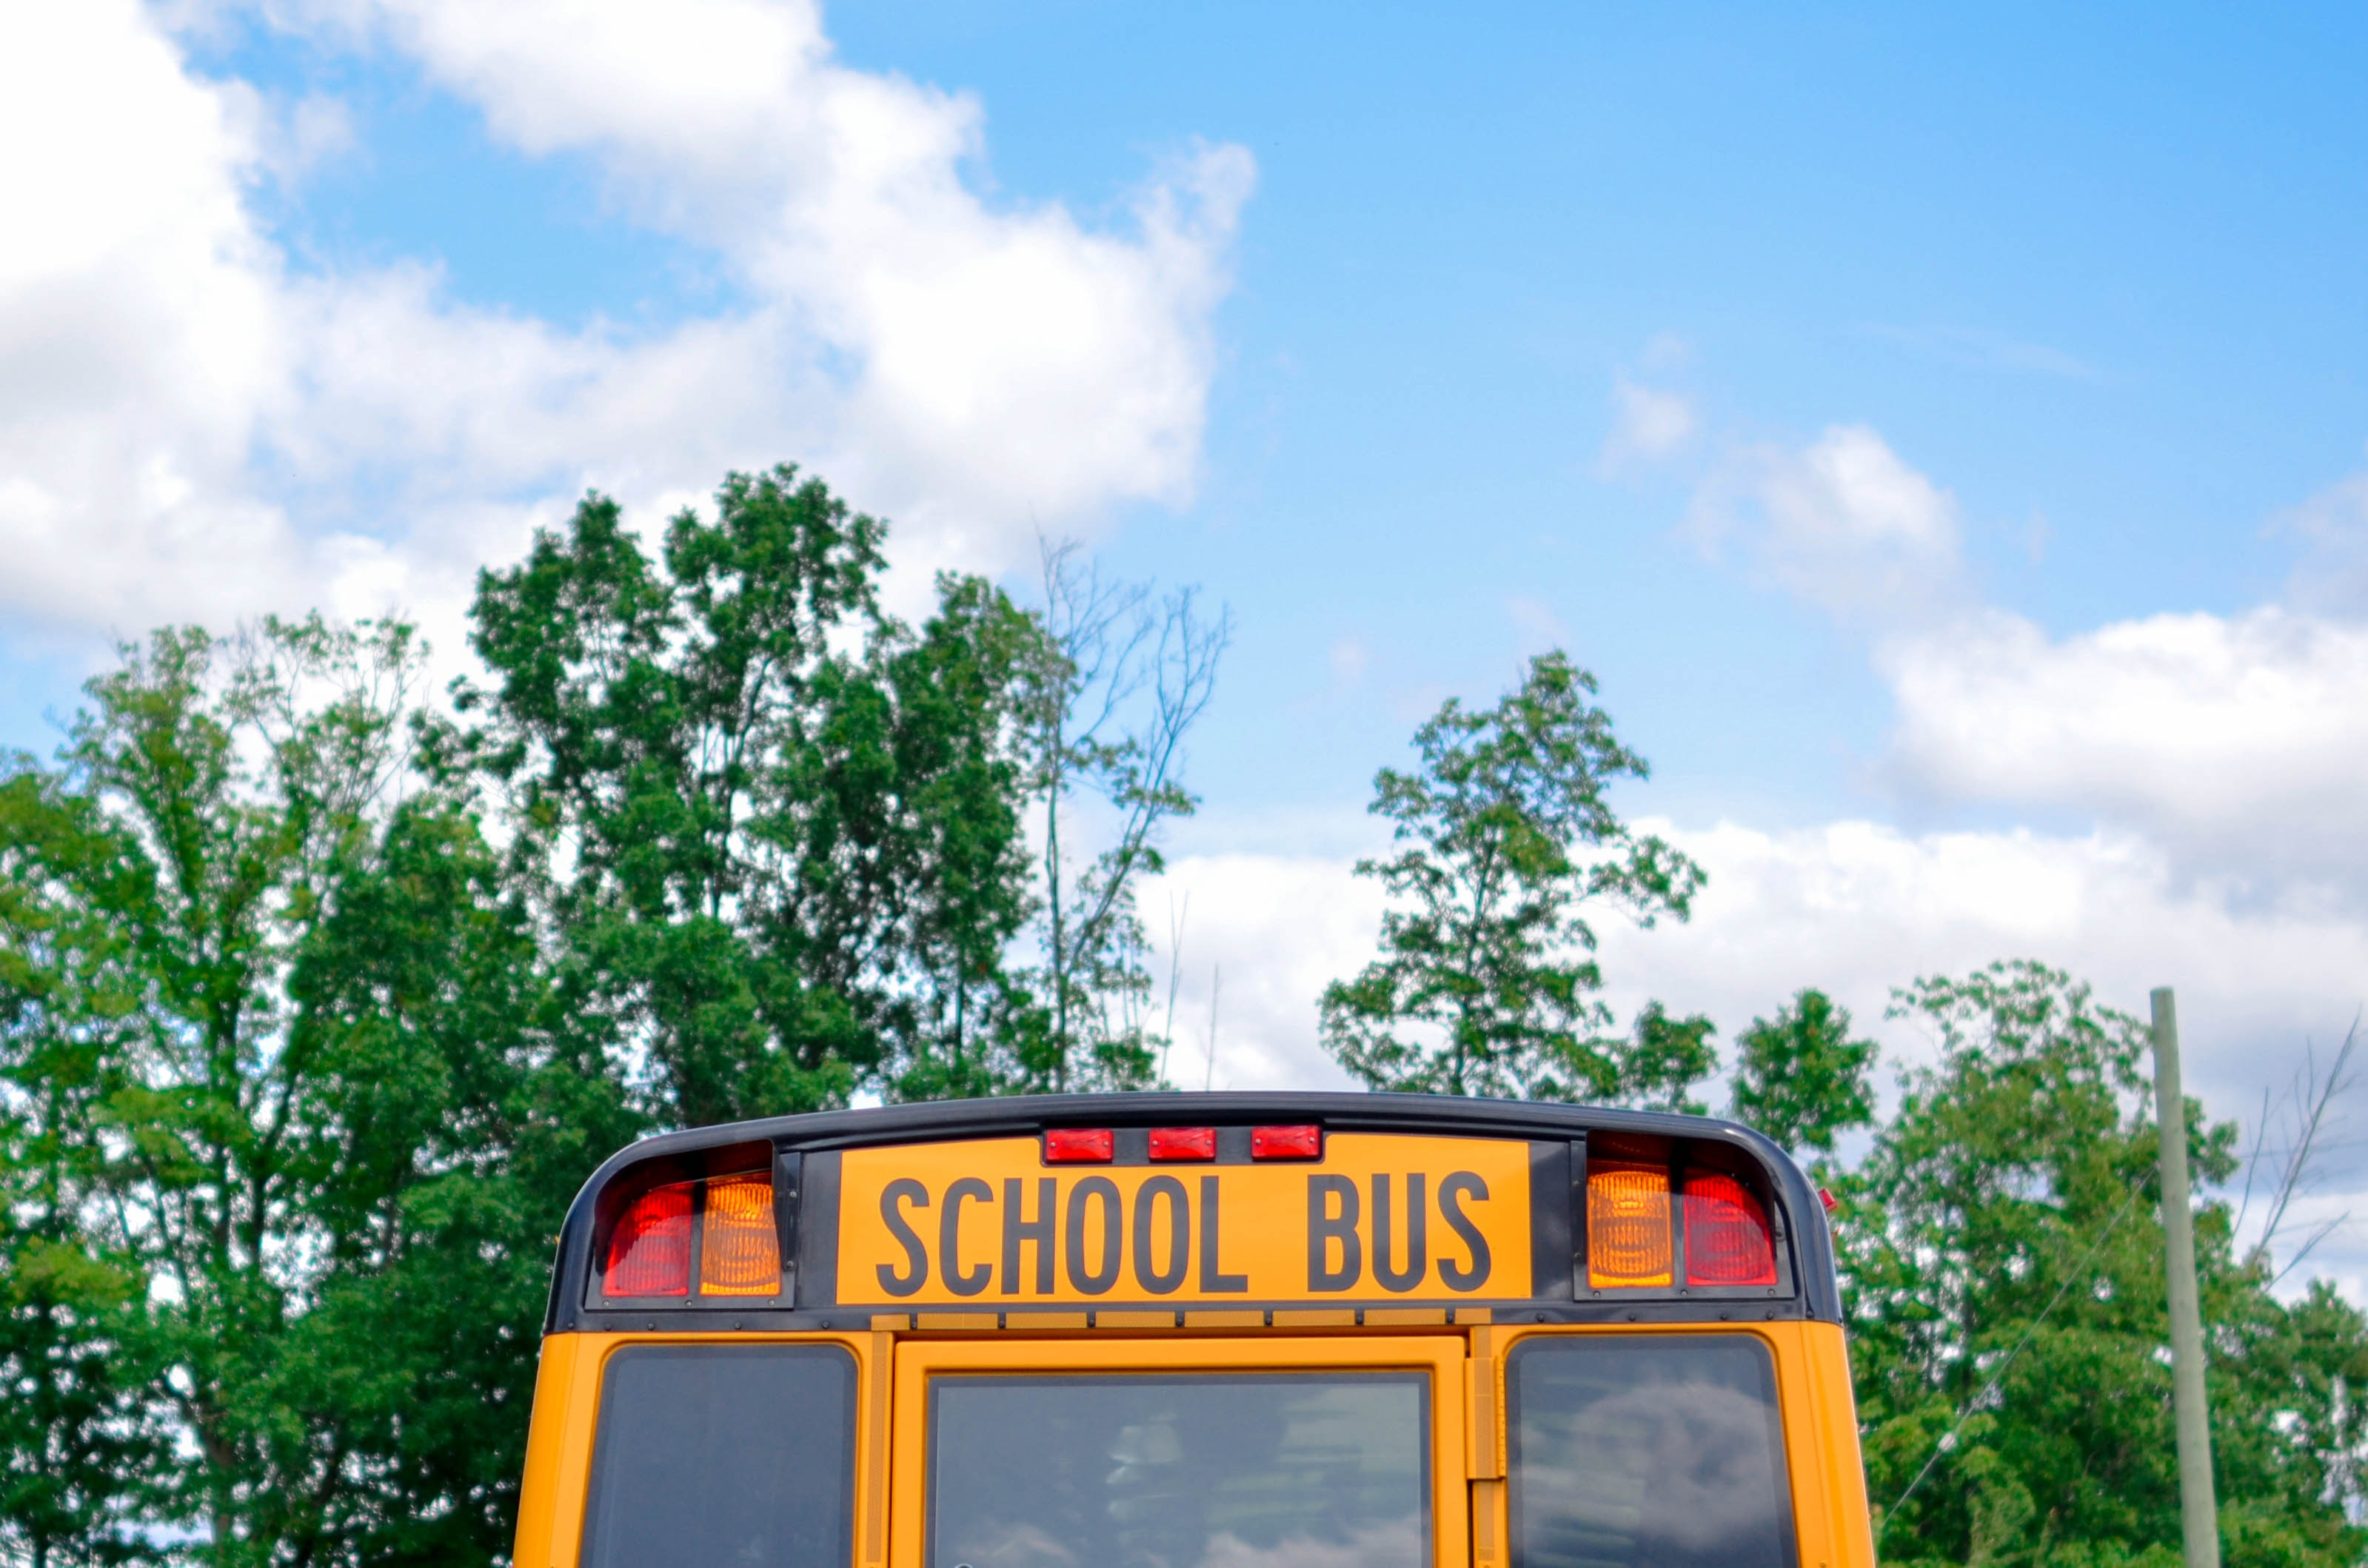 School bus - 21 things I've learned from the first term of starting primary school